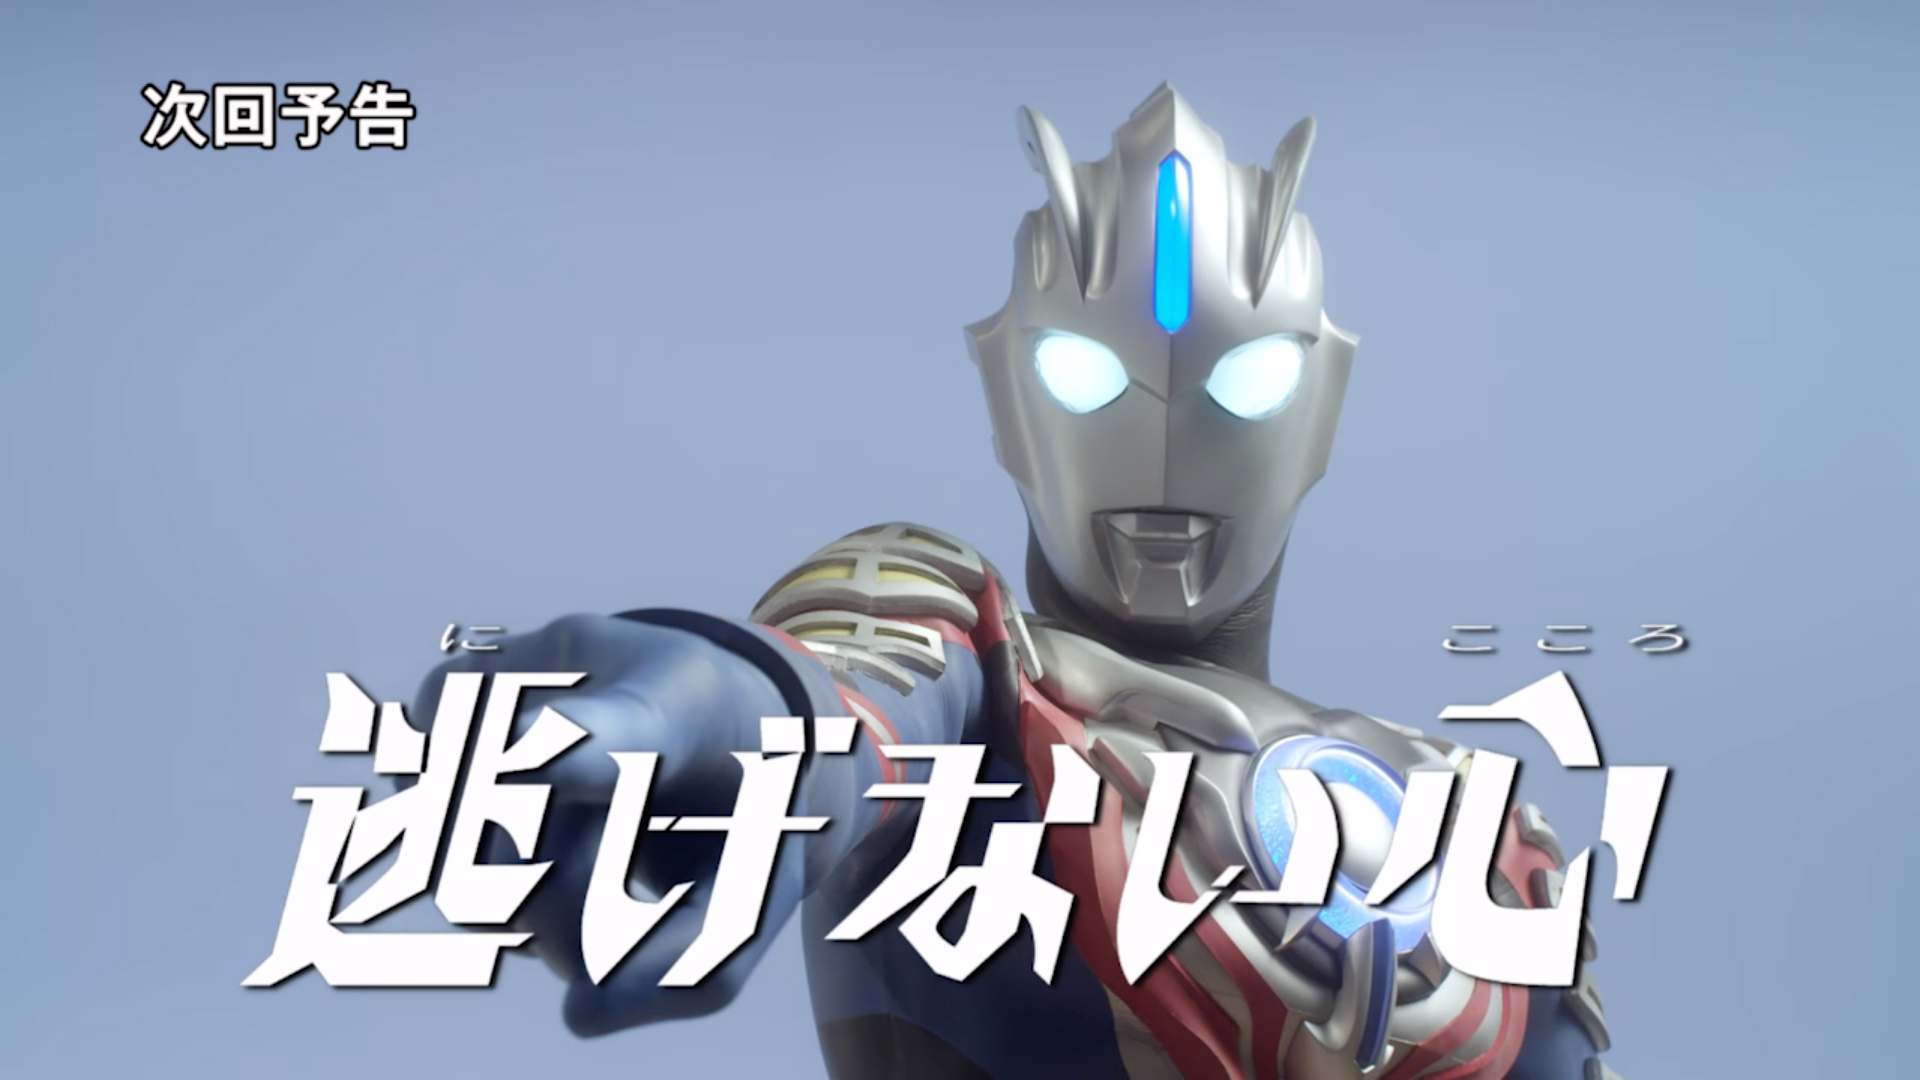 Next Time On Ultraman Orb: Episode 5